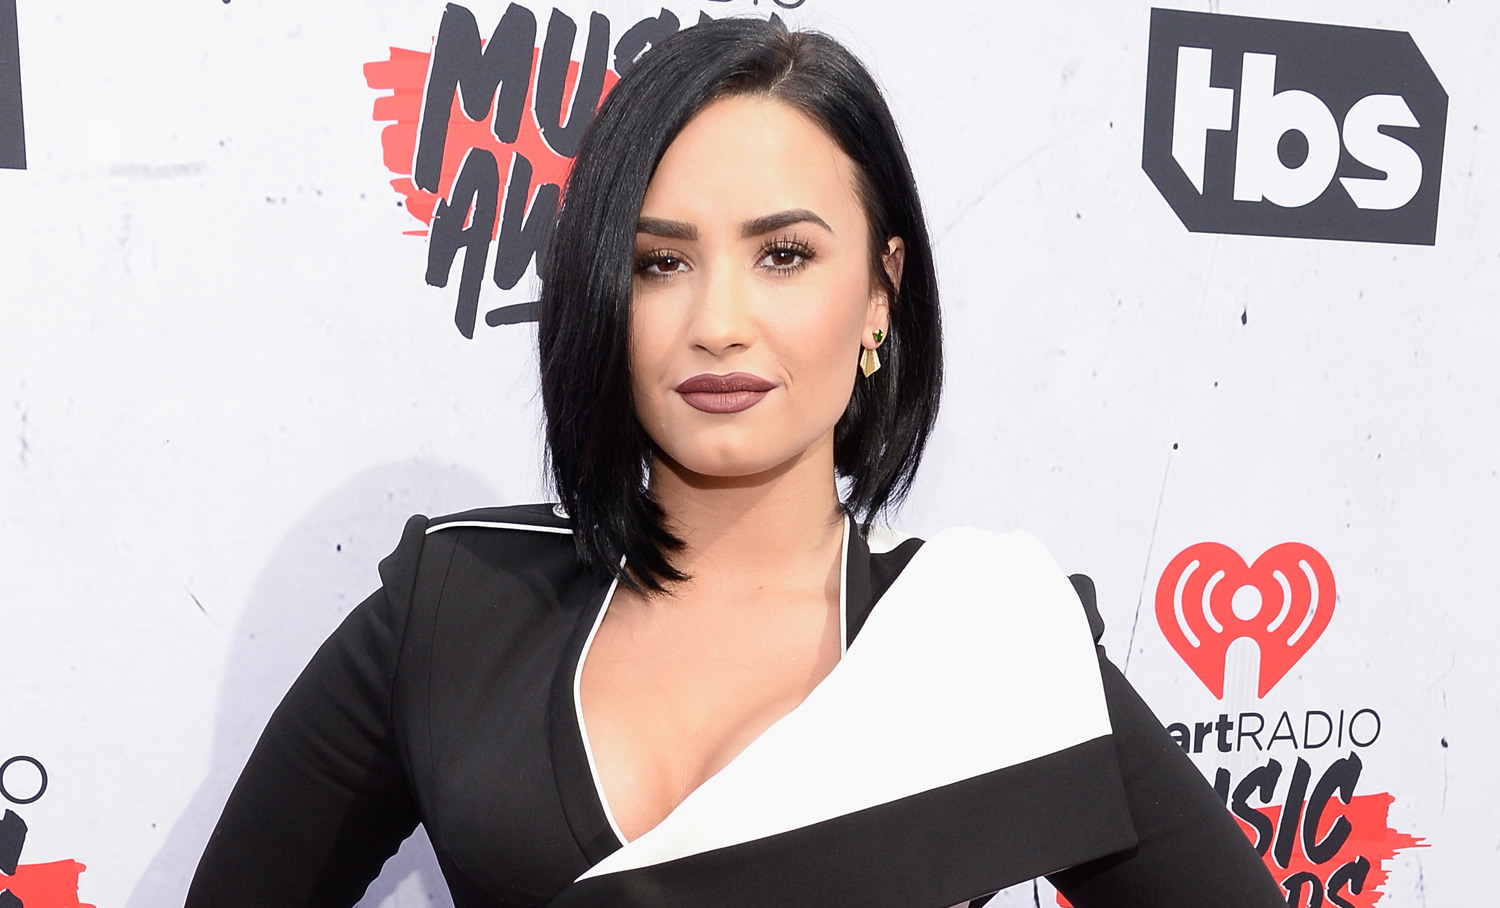 Demi Lovato Rocks the iHeartRadio Music Awards 2016 Red Carpet | 2016 ...